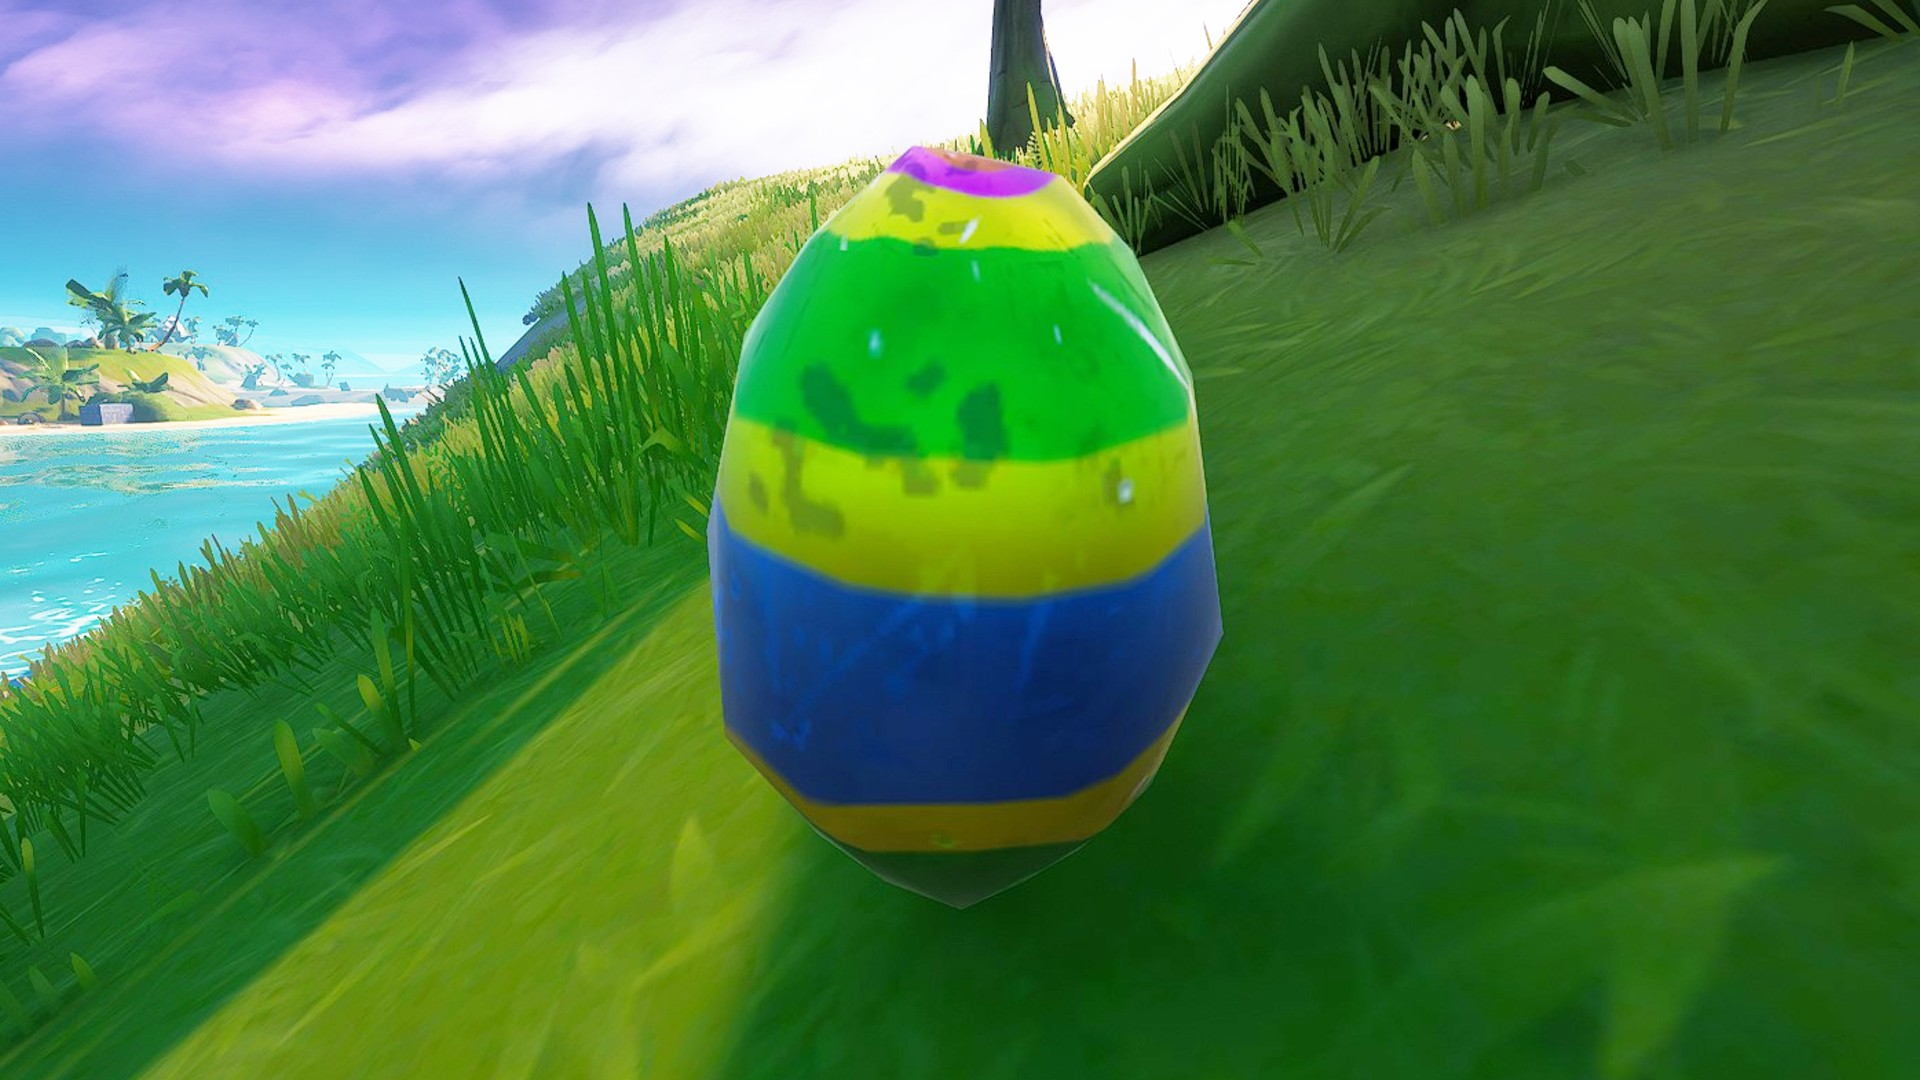 Where to forage bouncy Easter eggs in Fortnite